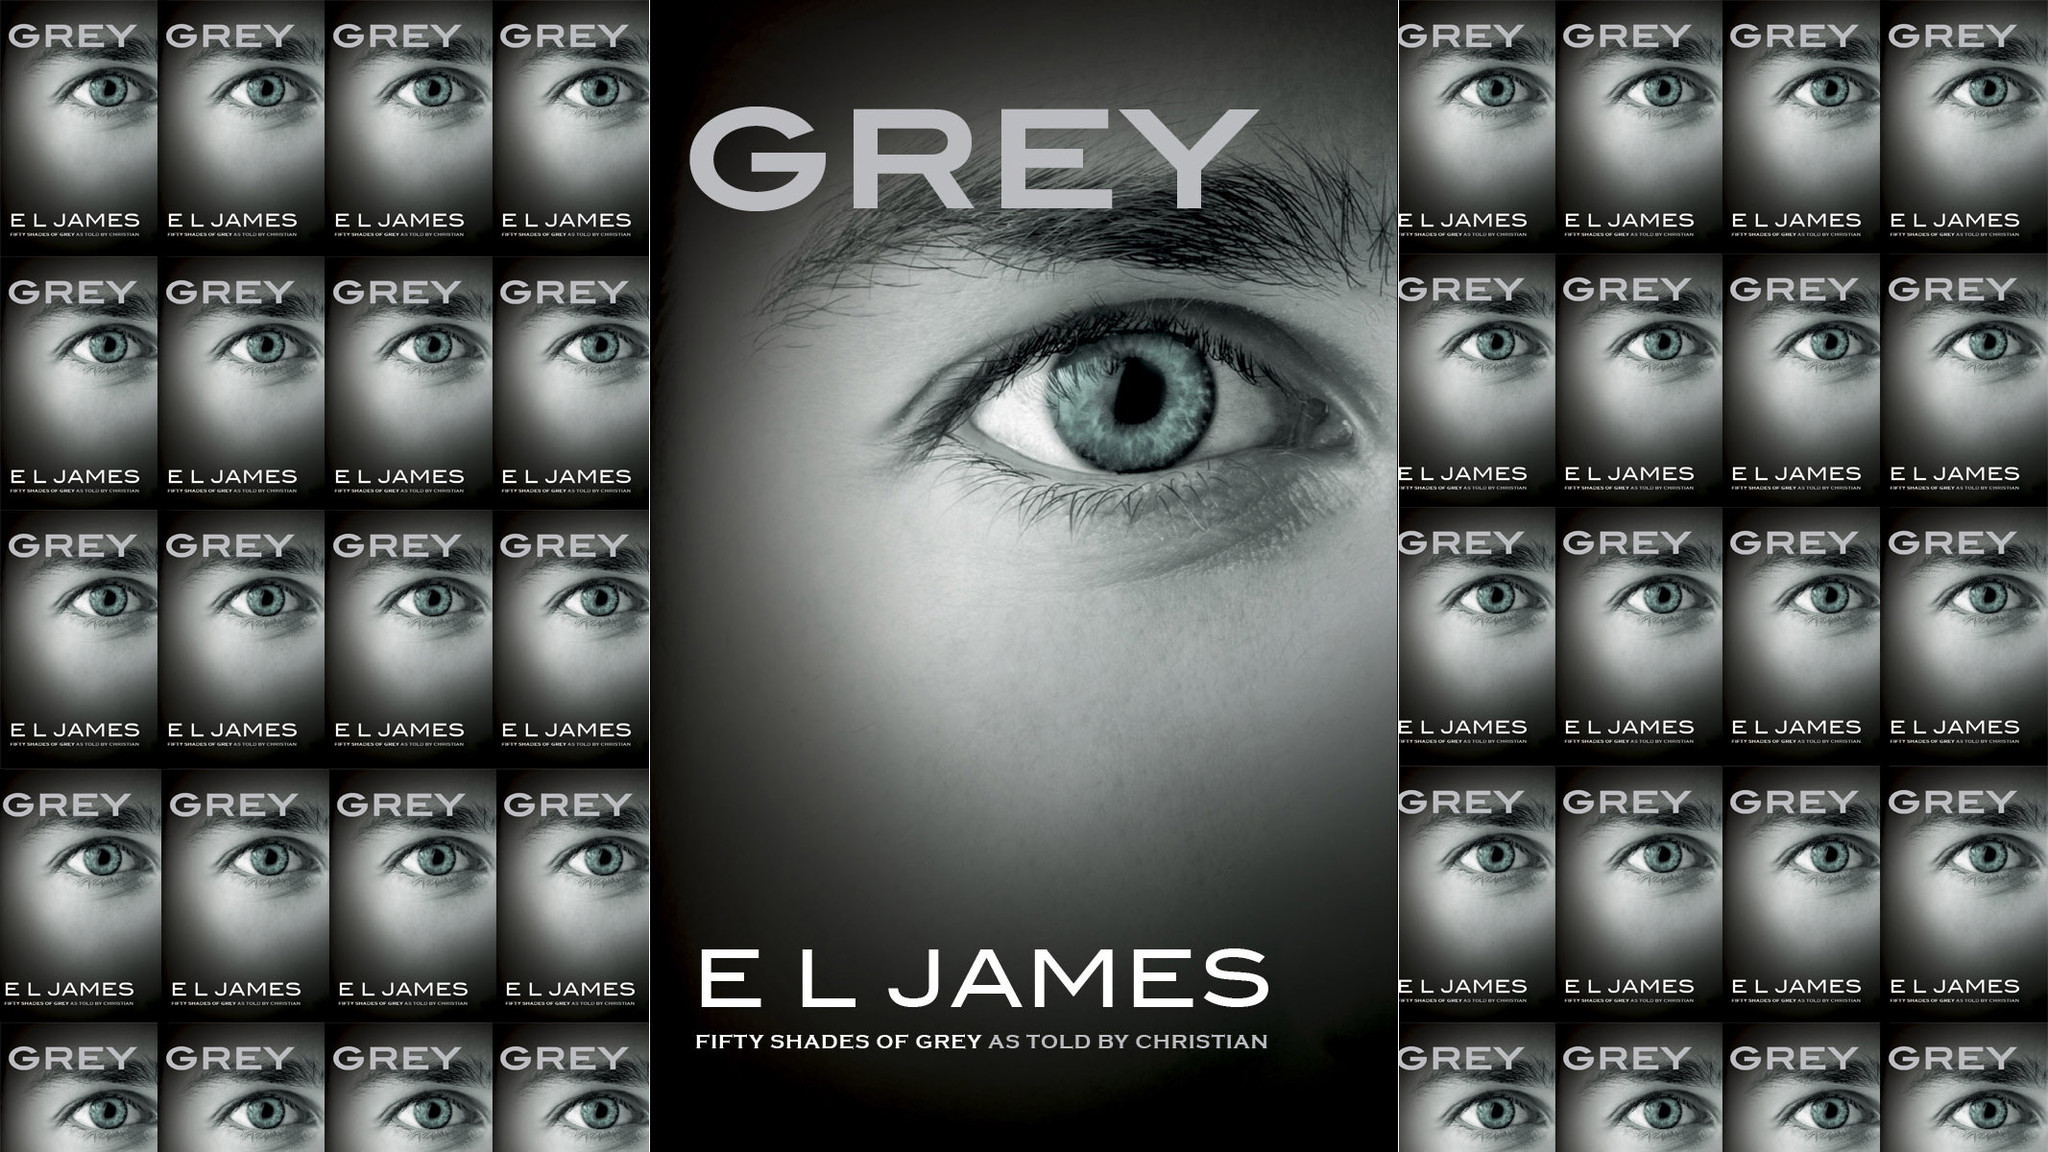 e l james 39 39 grey 39 shoots to top of amazon bestsellers in just one day la times. Black Bedroom Furniture Sets. Home Design Ideas